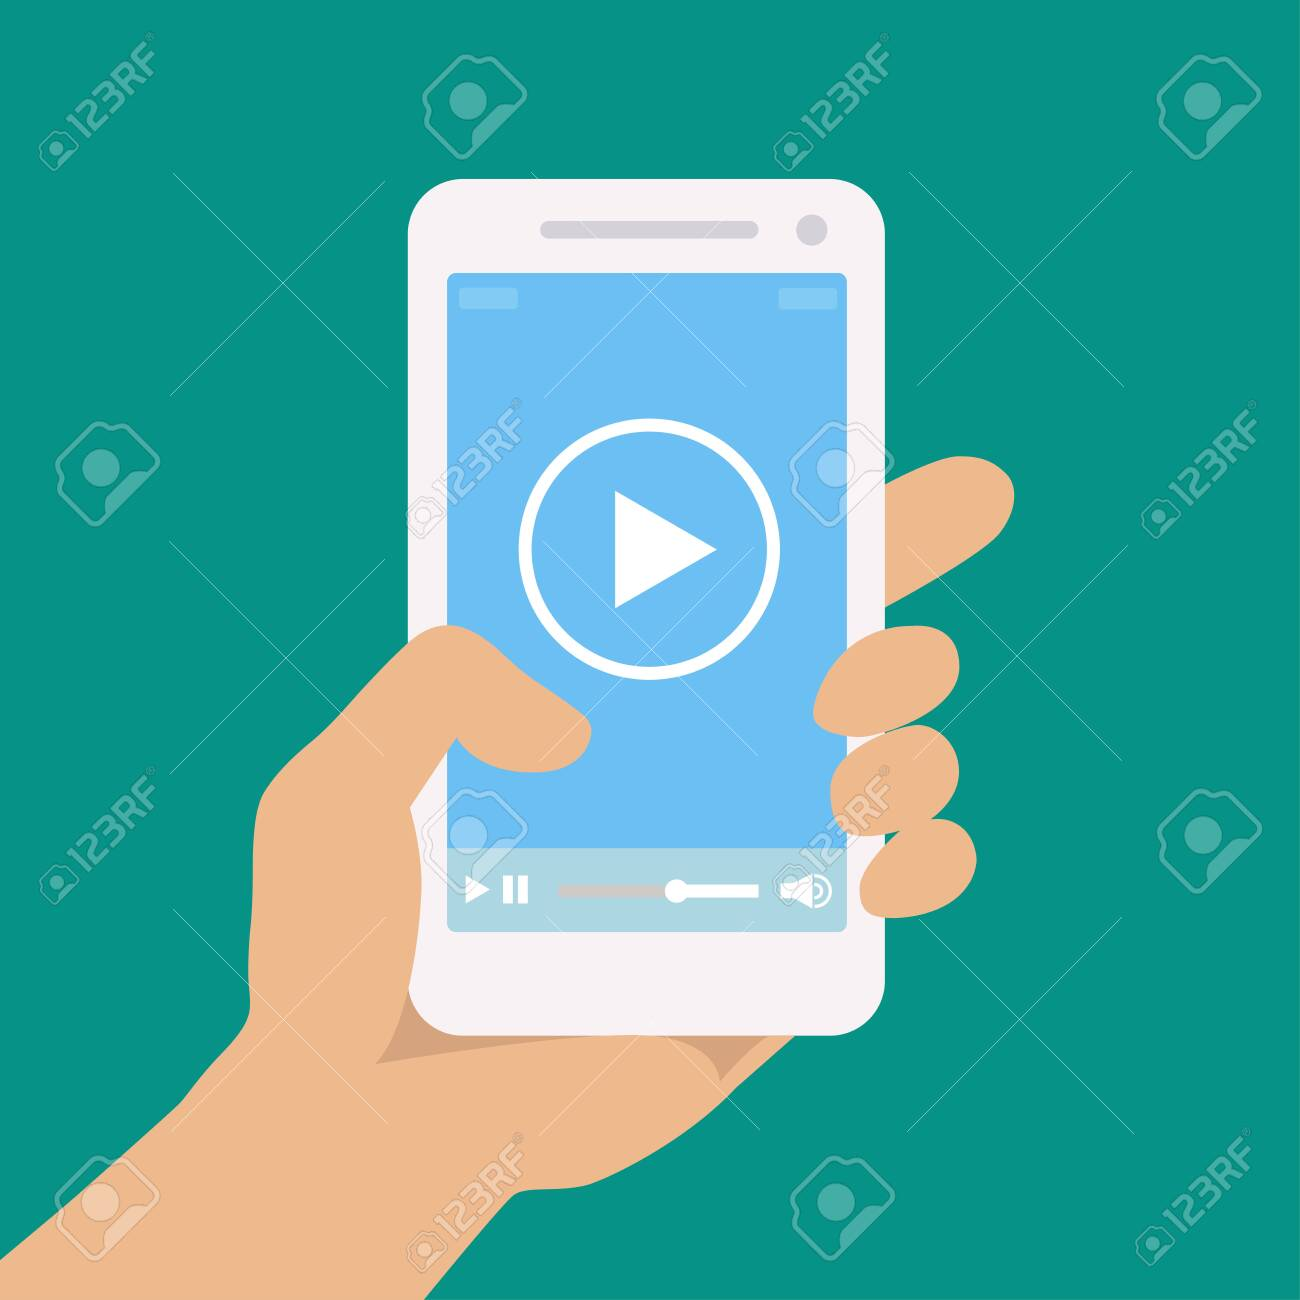 Picture of a hand holding a phone. Vector illustration. - 151352620